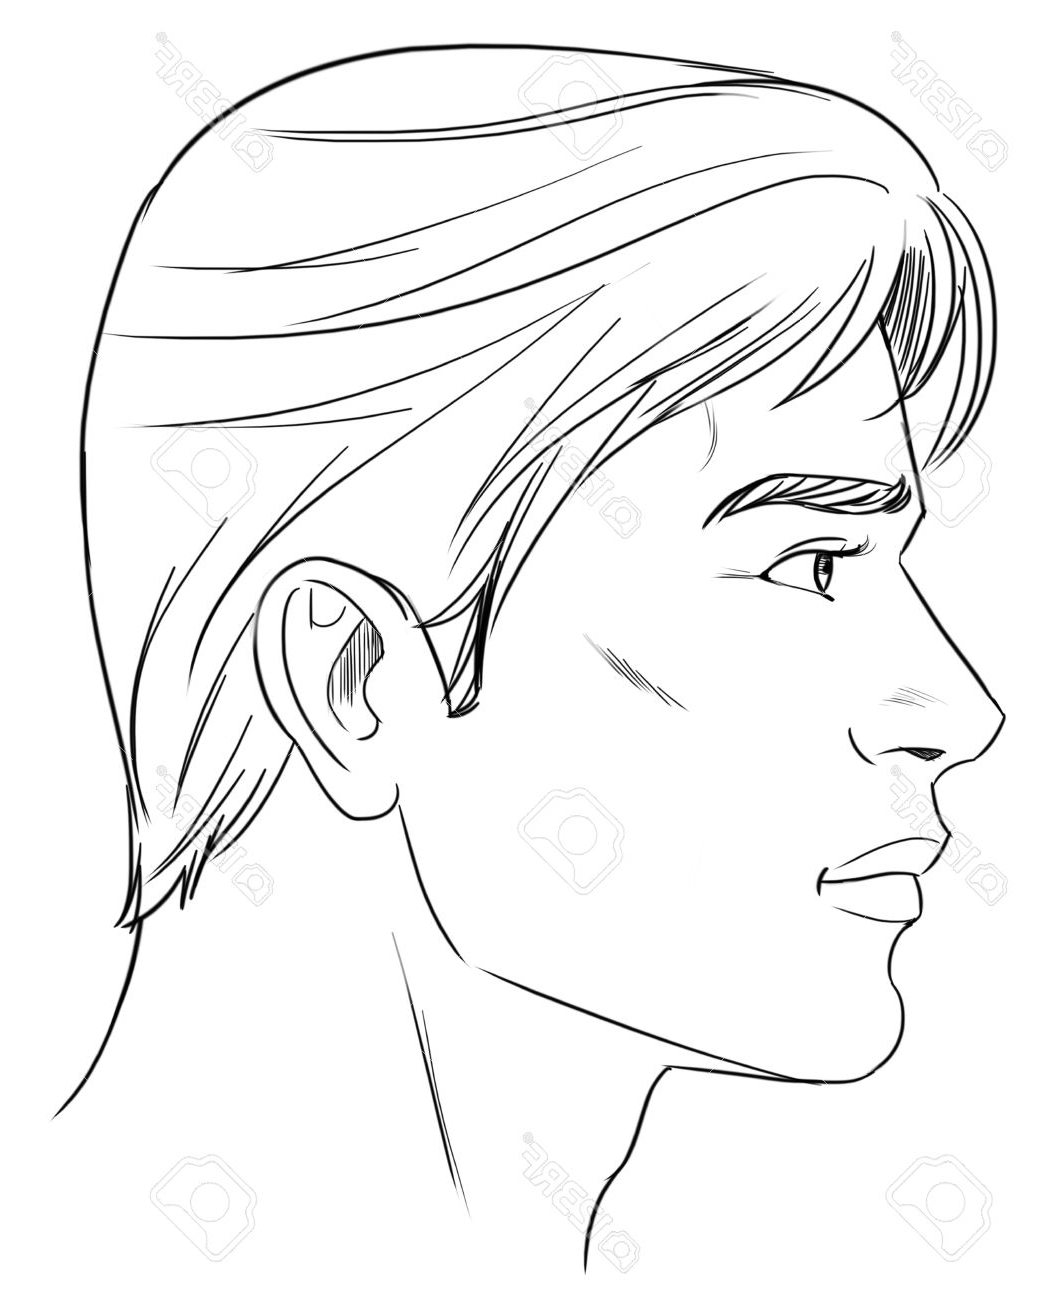 1046x1300 Drawing Face Profile Outline